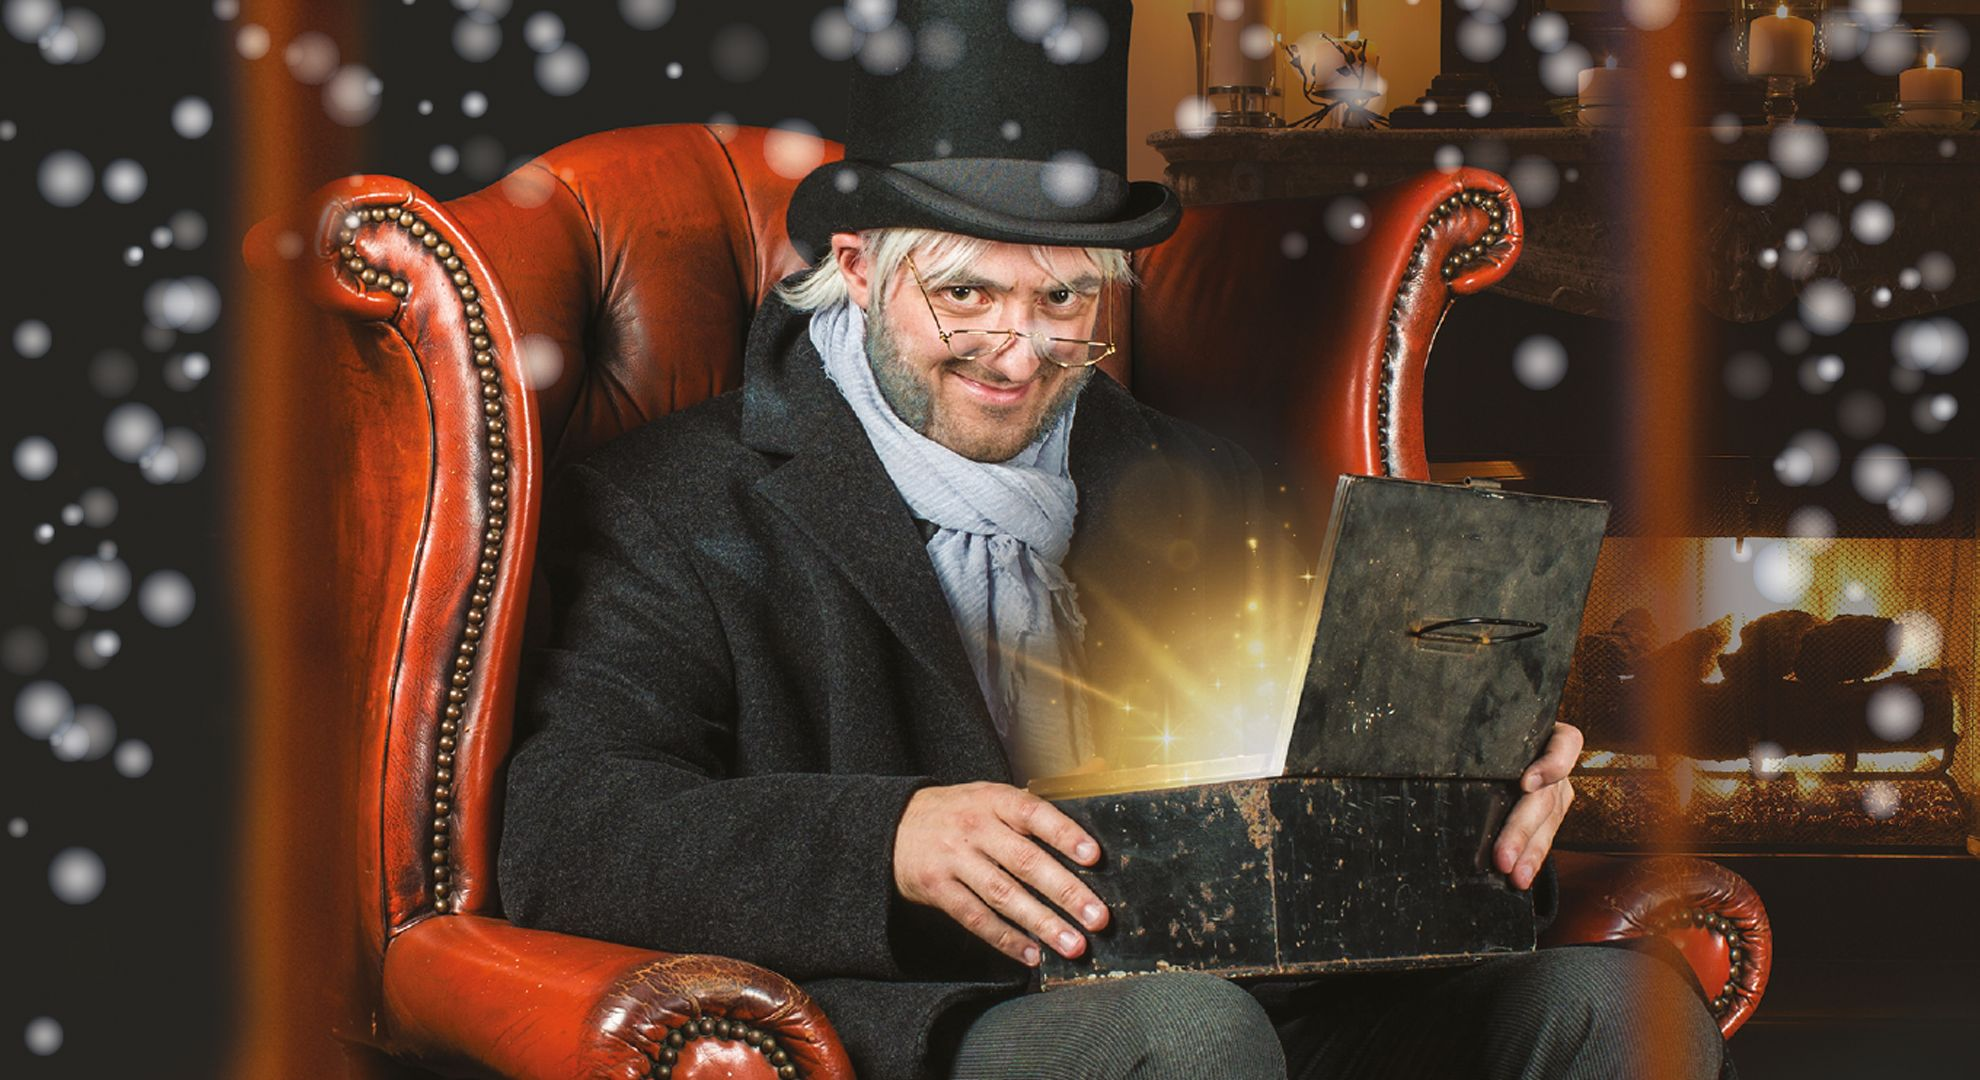 A Dickens of a Christmas tale at the Brewhouse Theatre this festive season